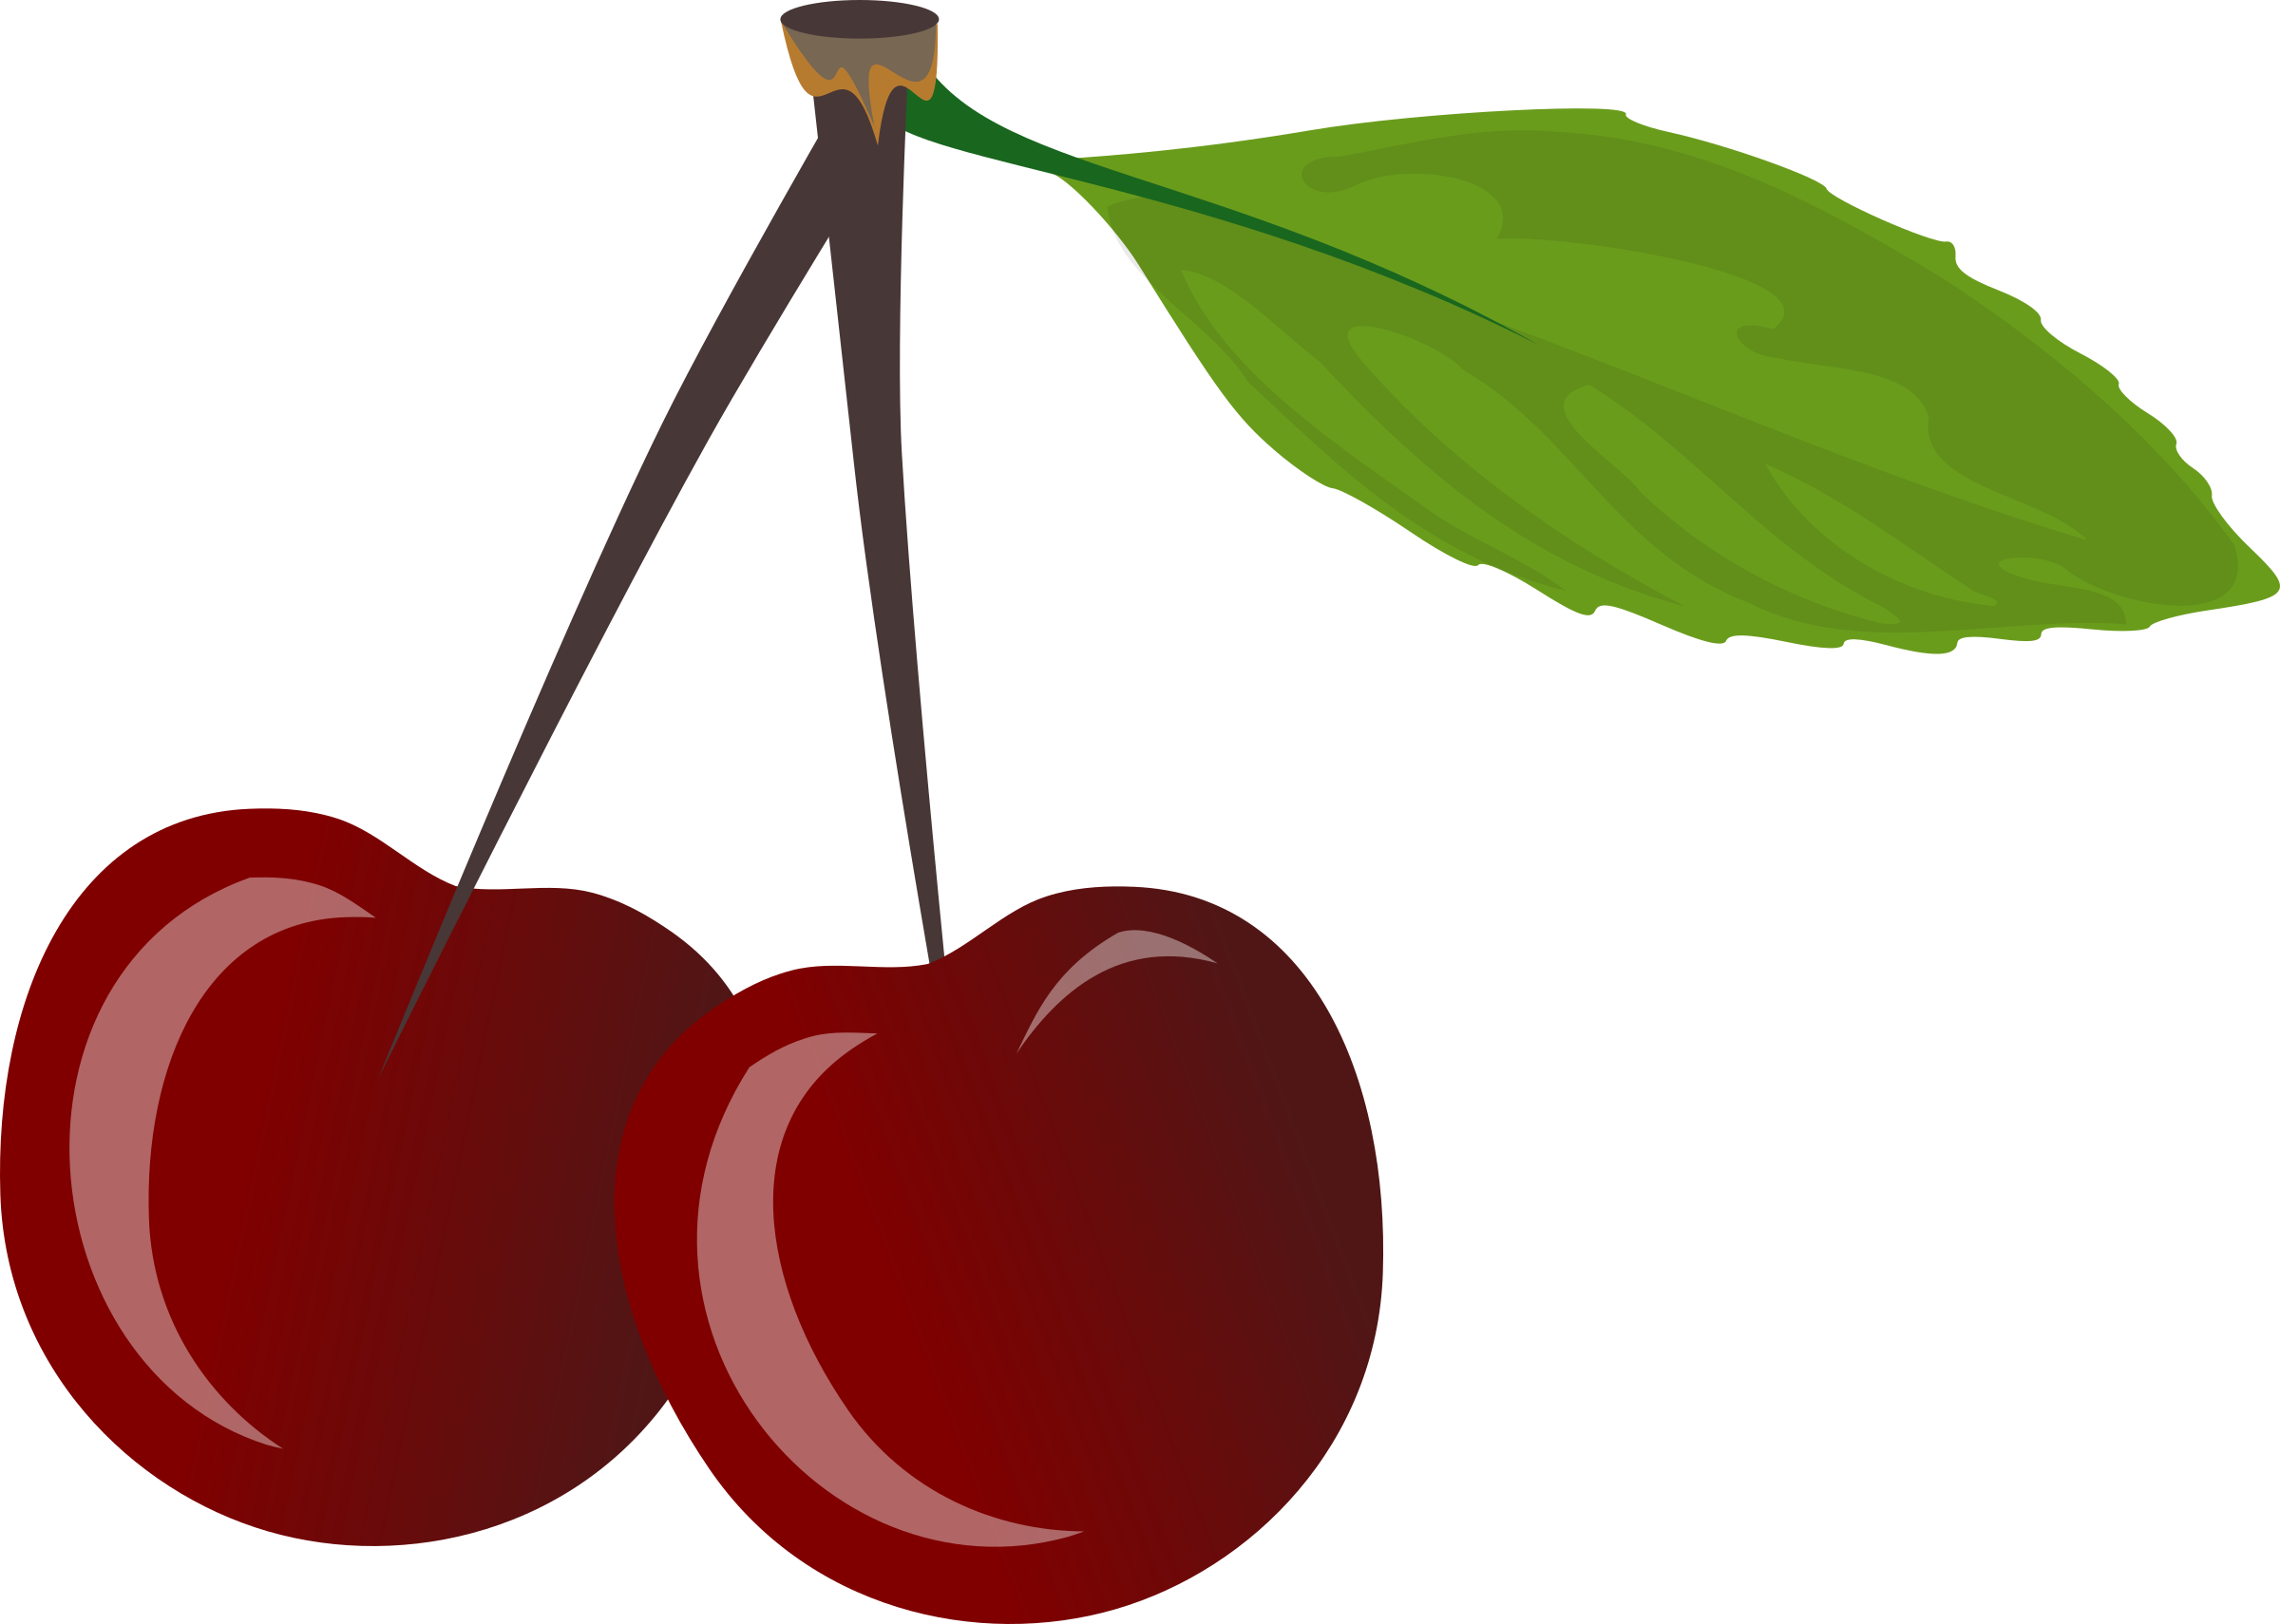 vector transparent stock Cherries big image png. Cherry clipart small food.